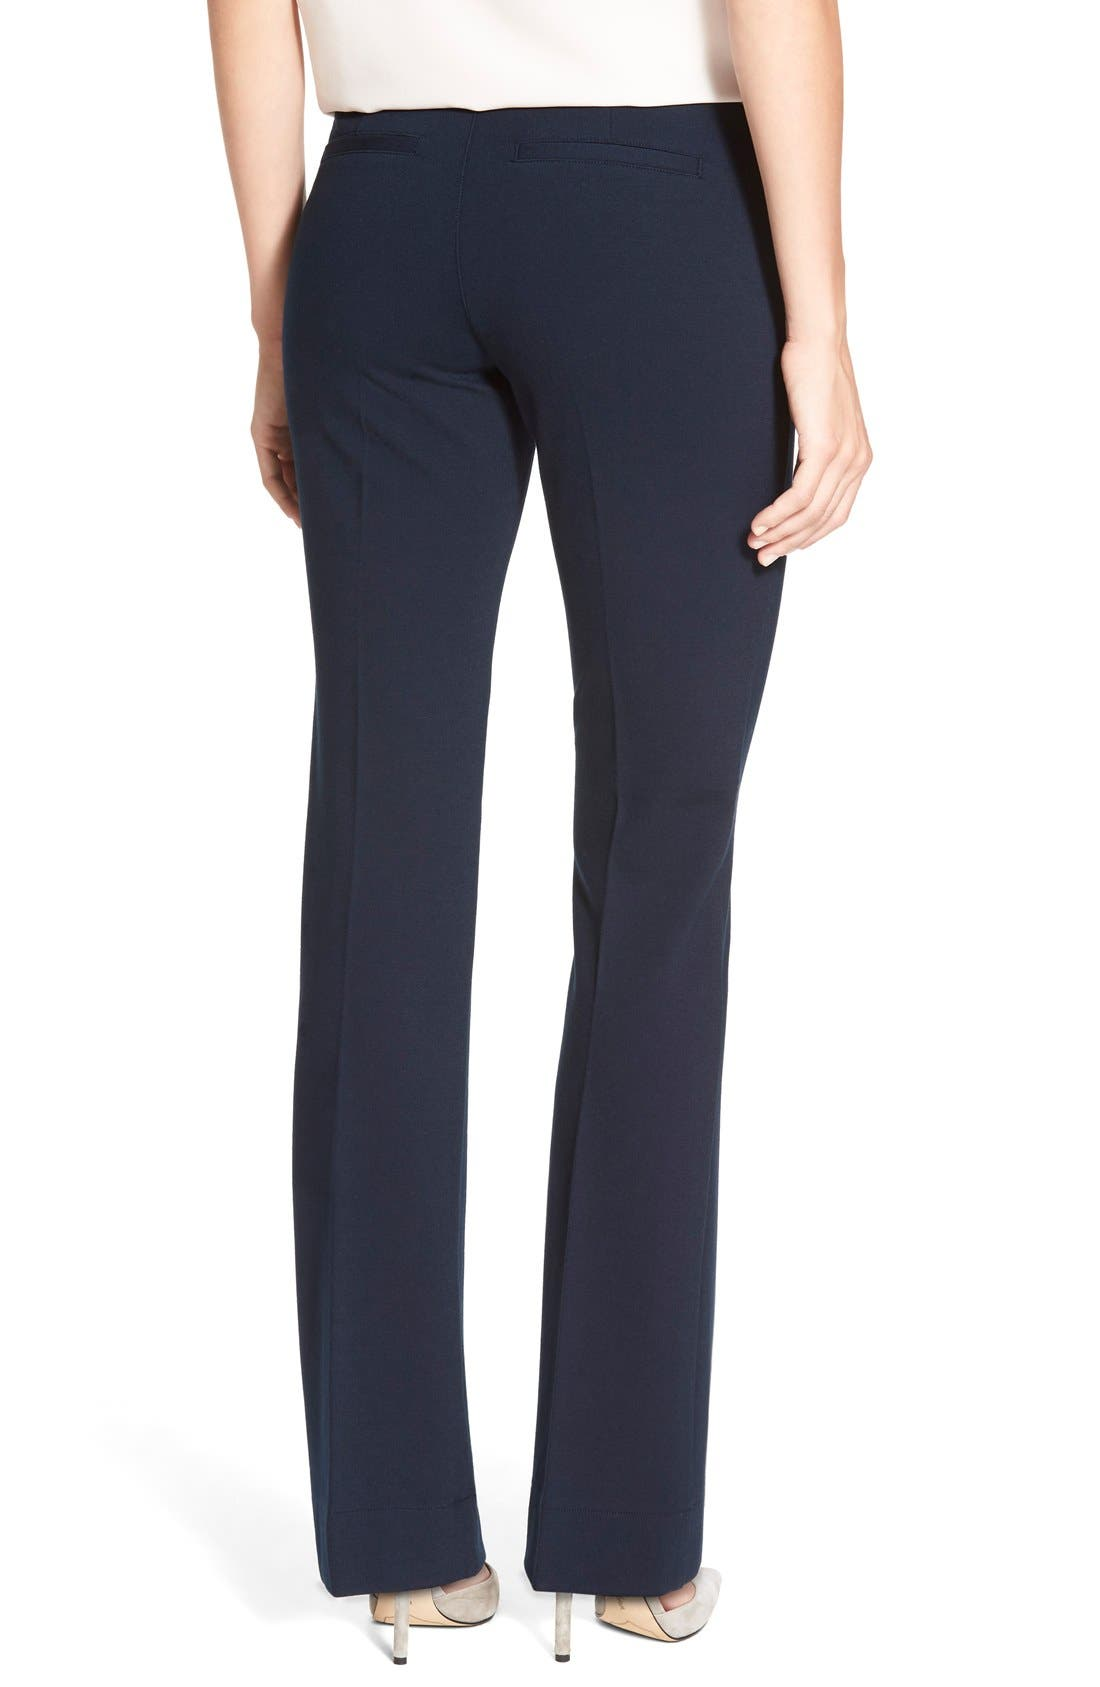 Alternate Image 2  - NYDJ Michelle Stretch Ponte Trousers (Regular & Petite)